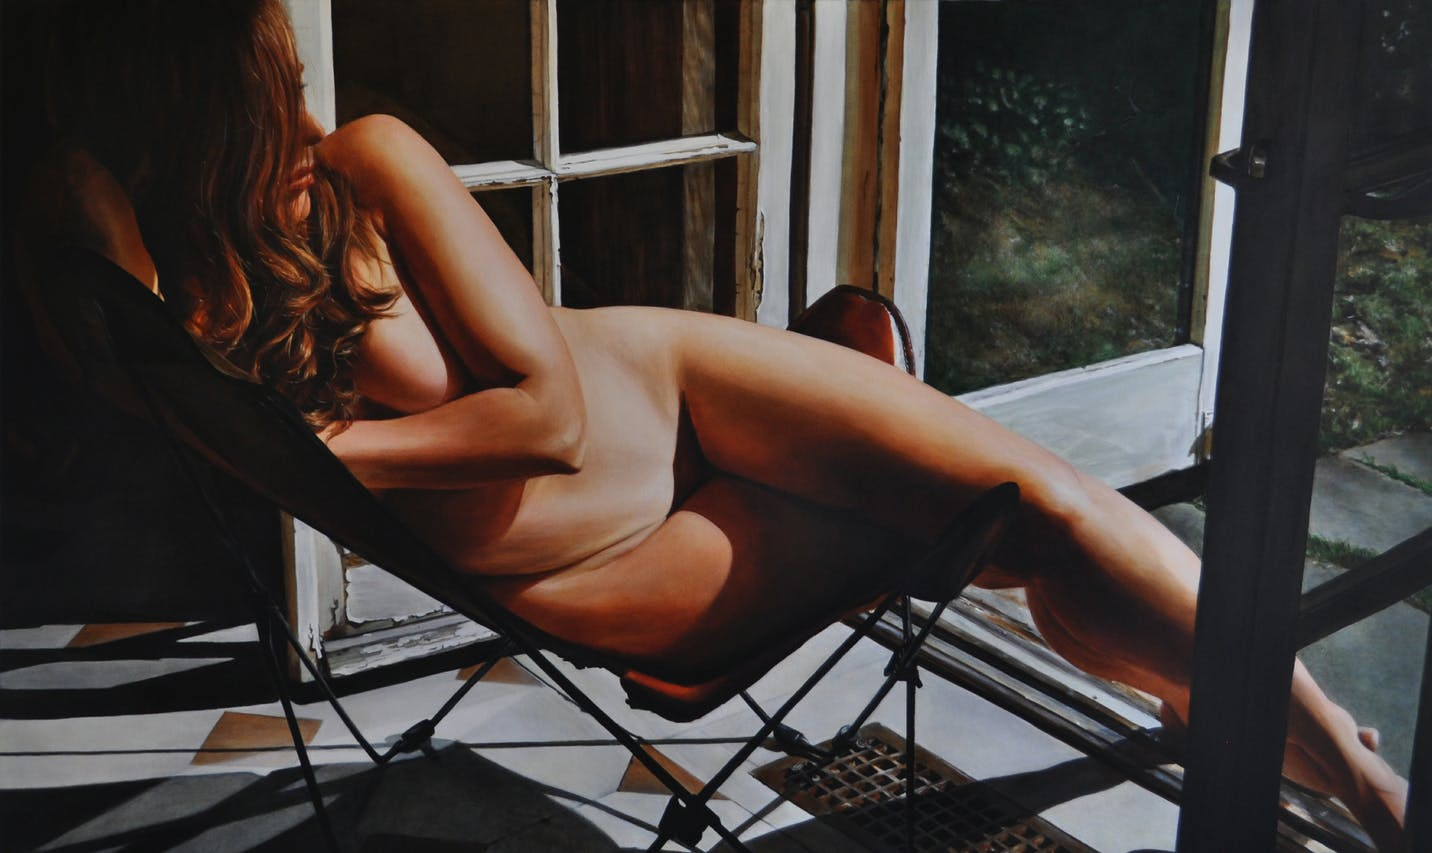 VICTORIA SELBACH'S LIFE-SIZE NUDE DEPICTIONS OF WOMEN